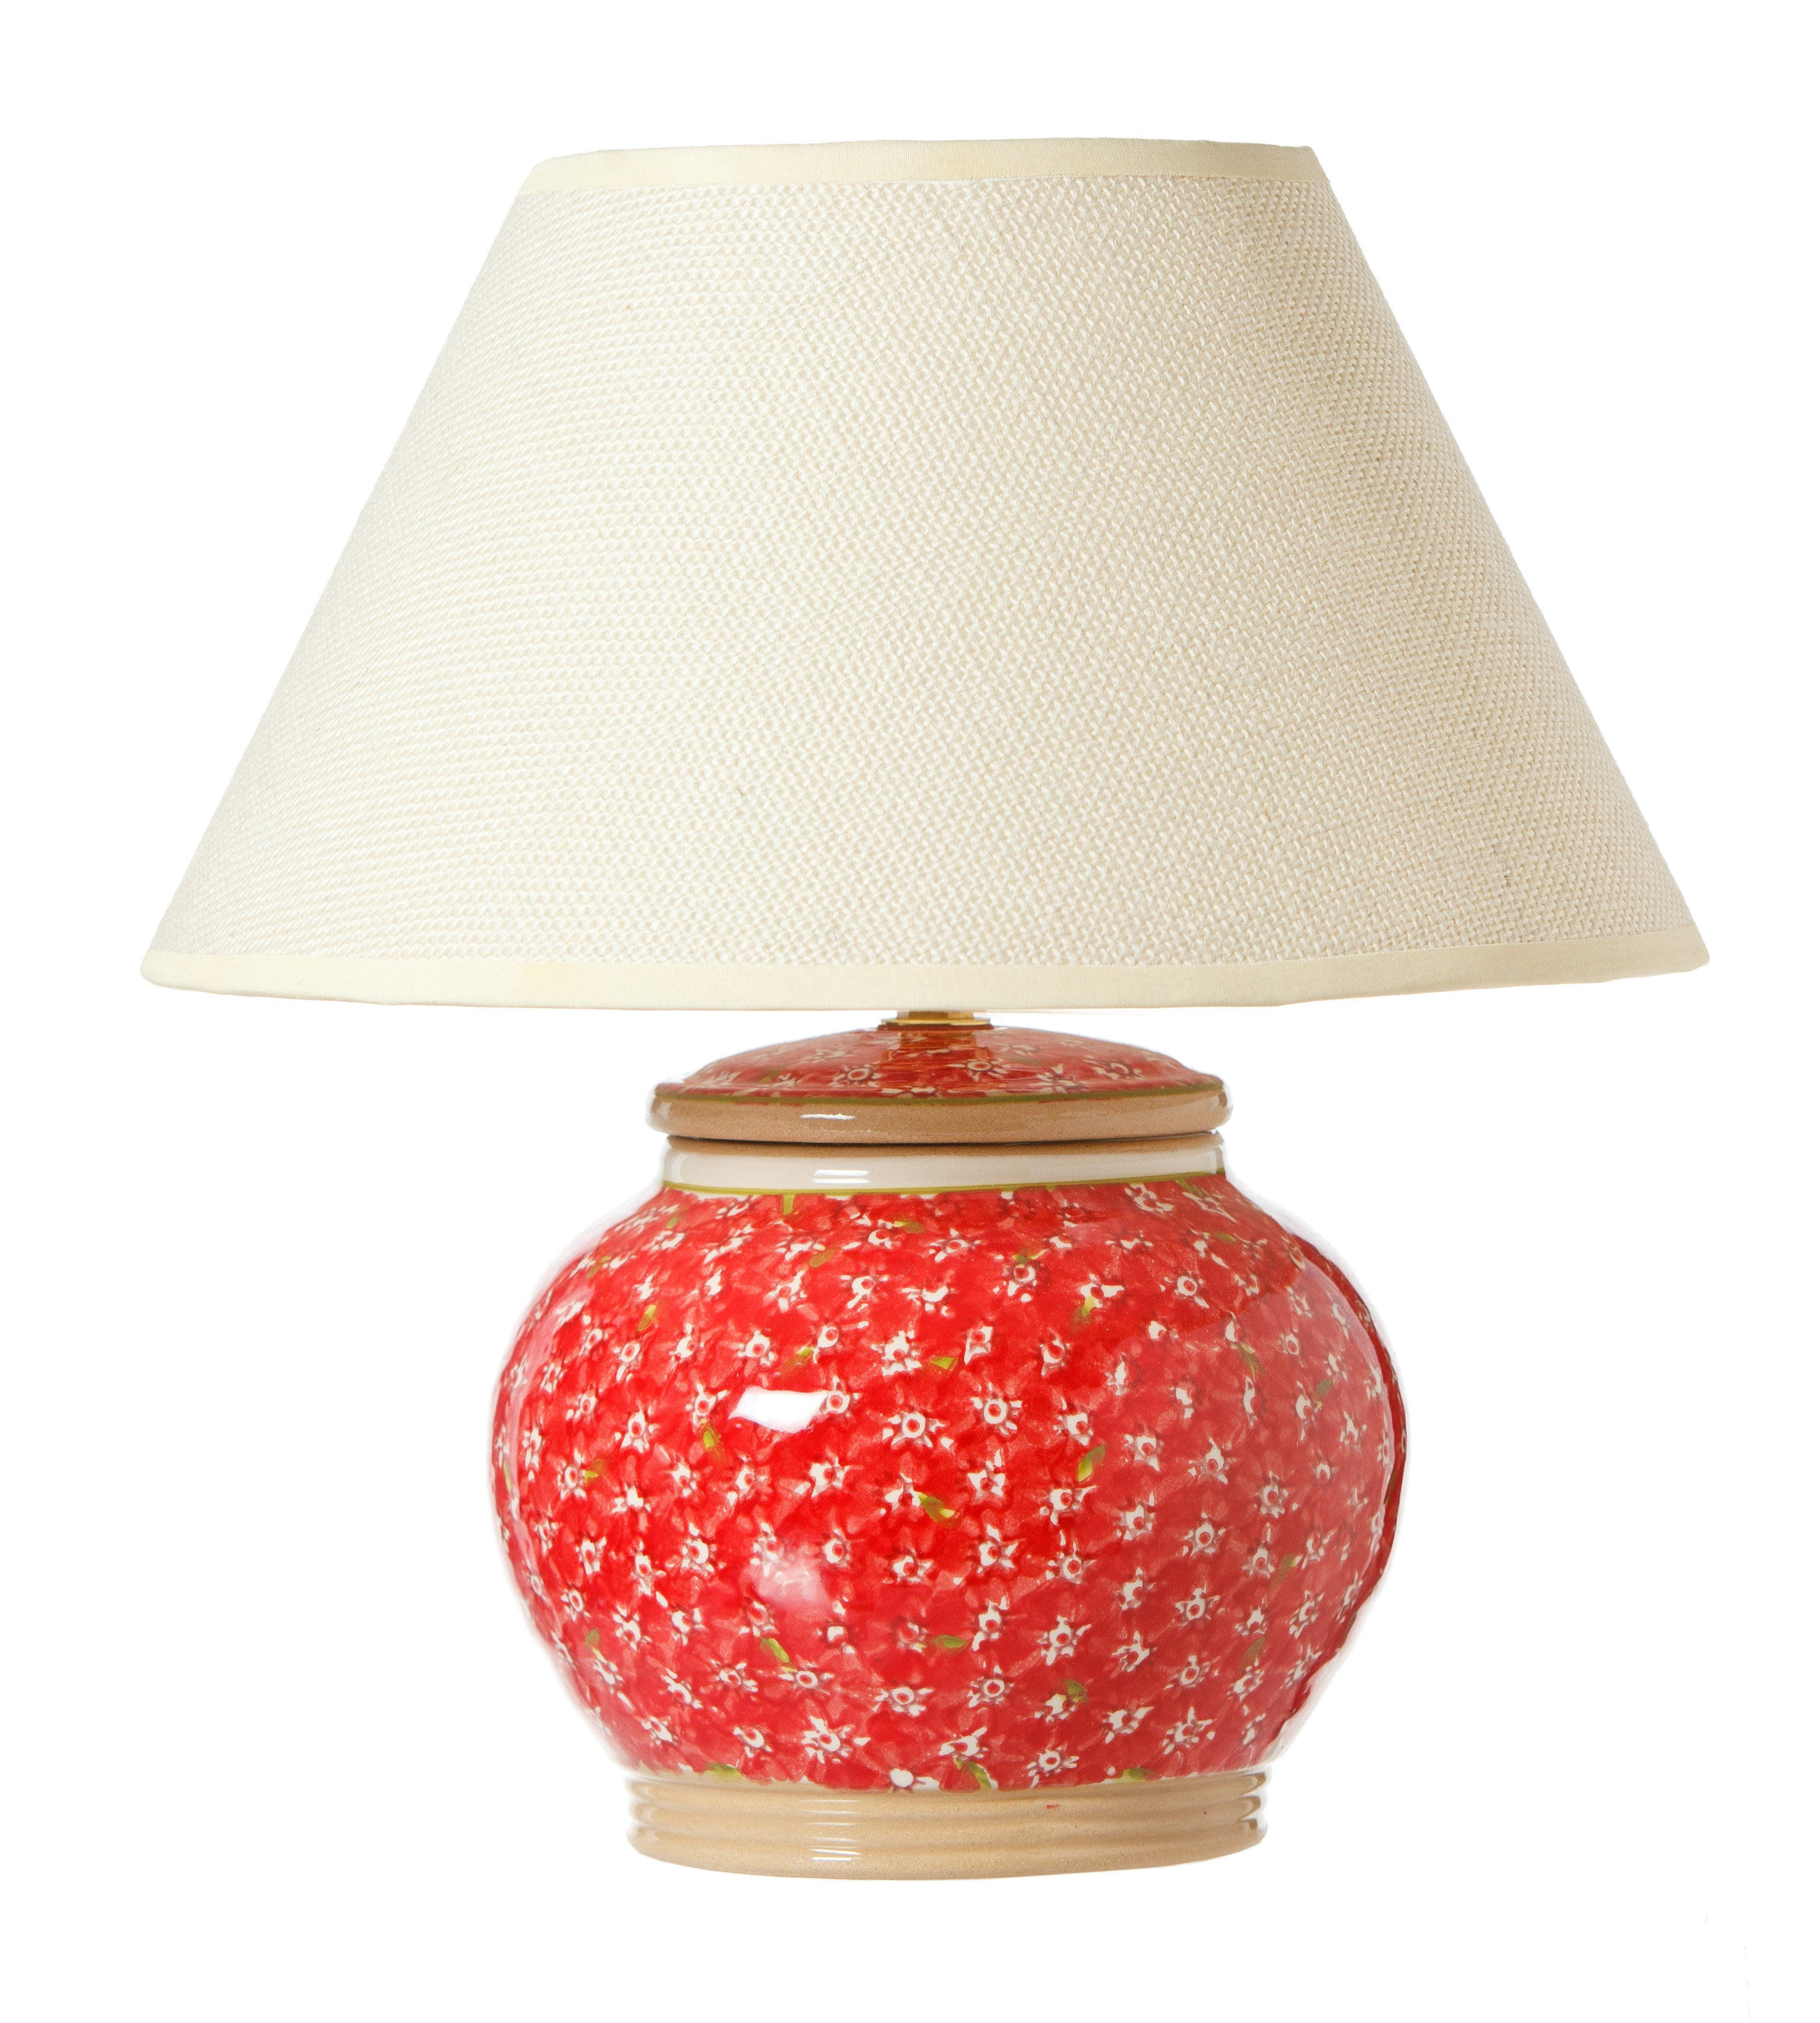 Irish pottery lamps handcrafted pottery lamps nicholas mosse 5 inch lamp red lawn spongeware by nicholas mosse pottery ireland handmade irish craft geotapseo Choice Image